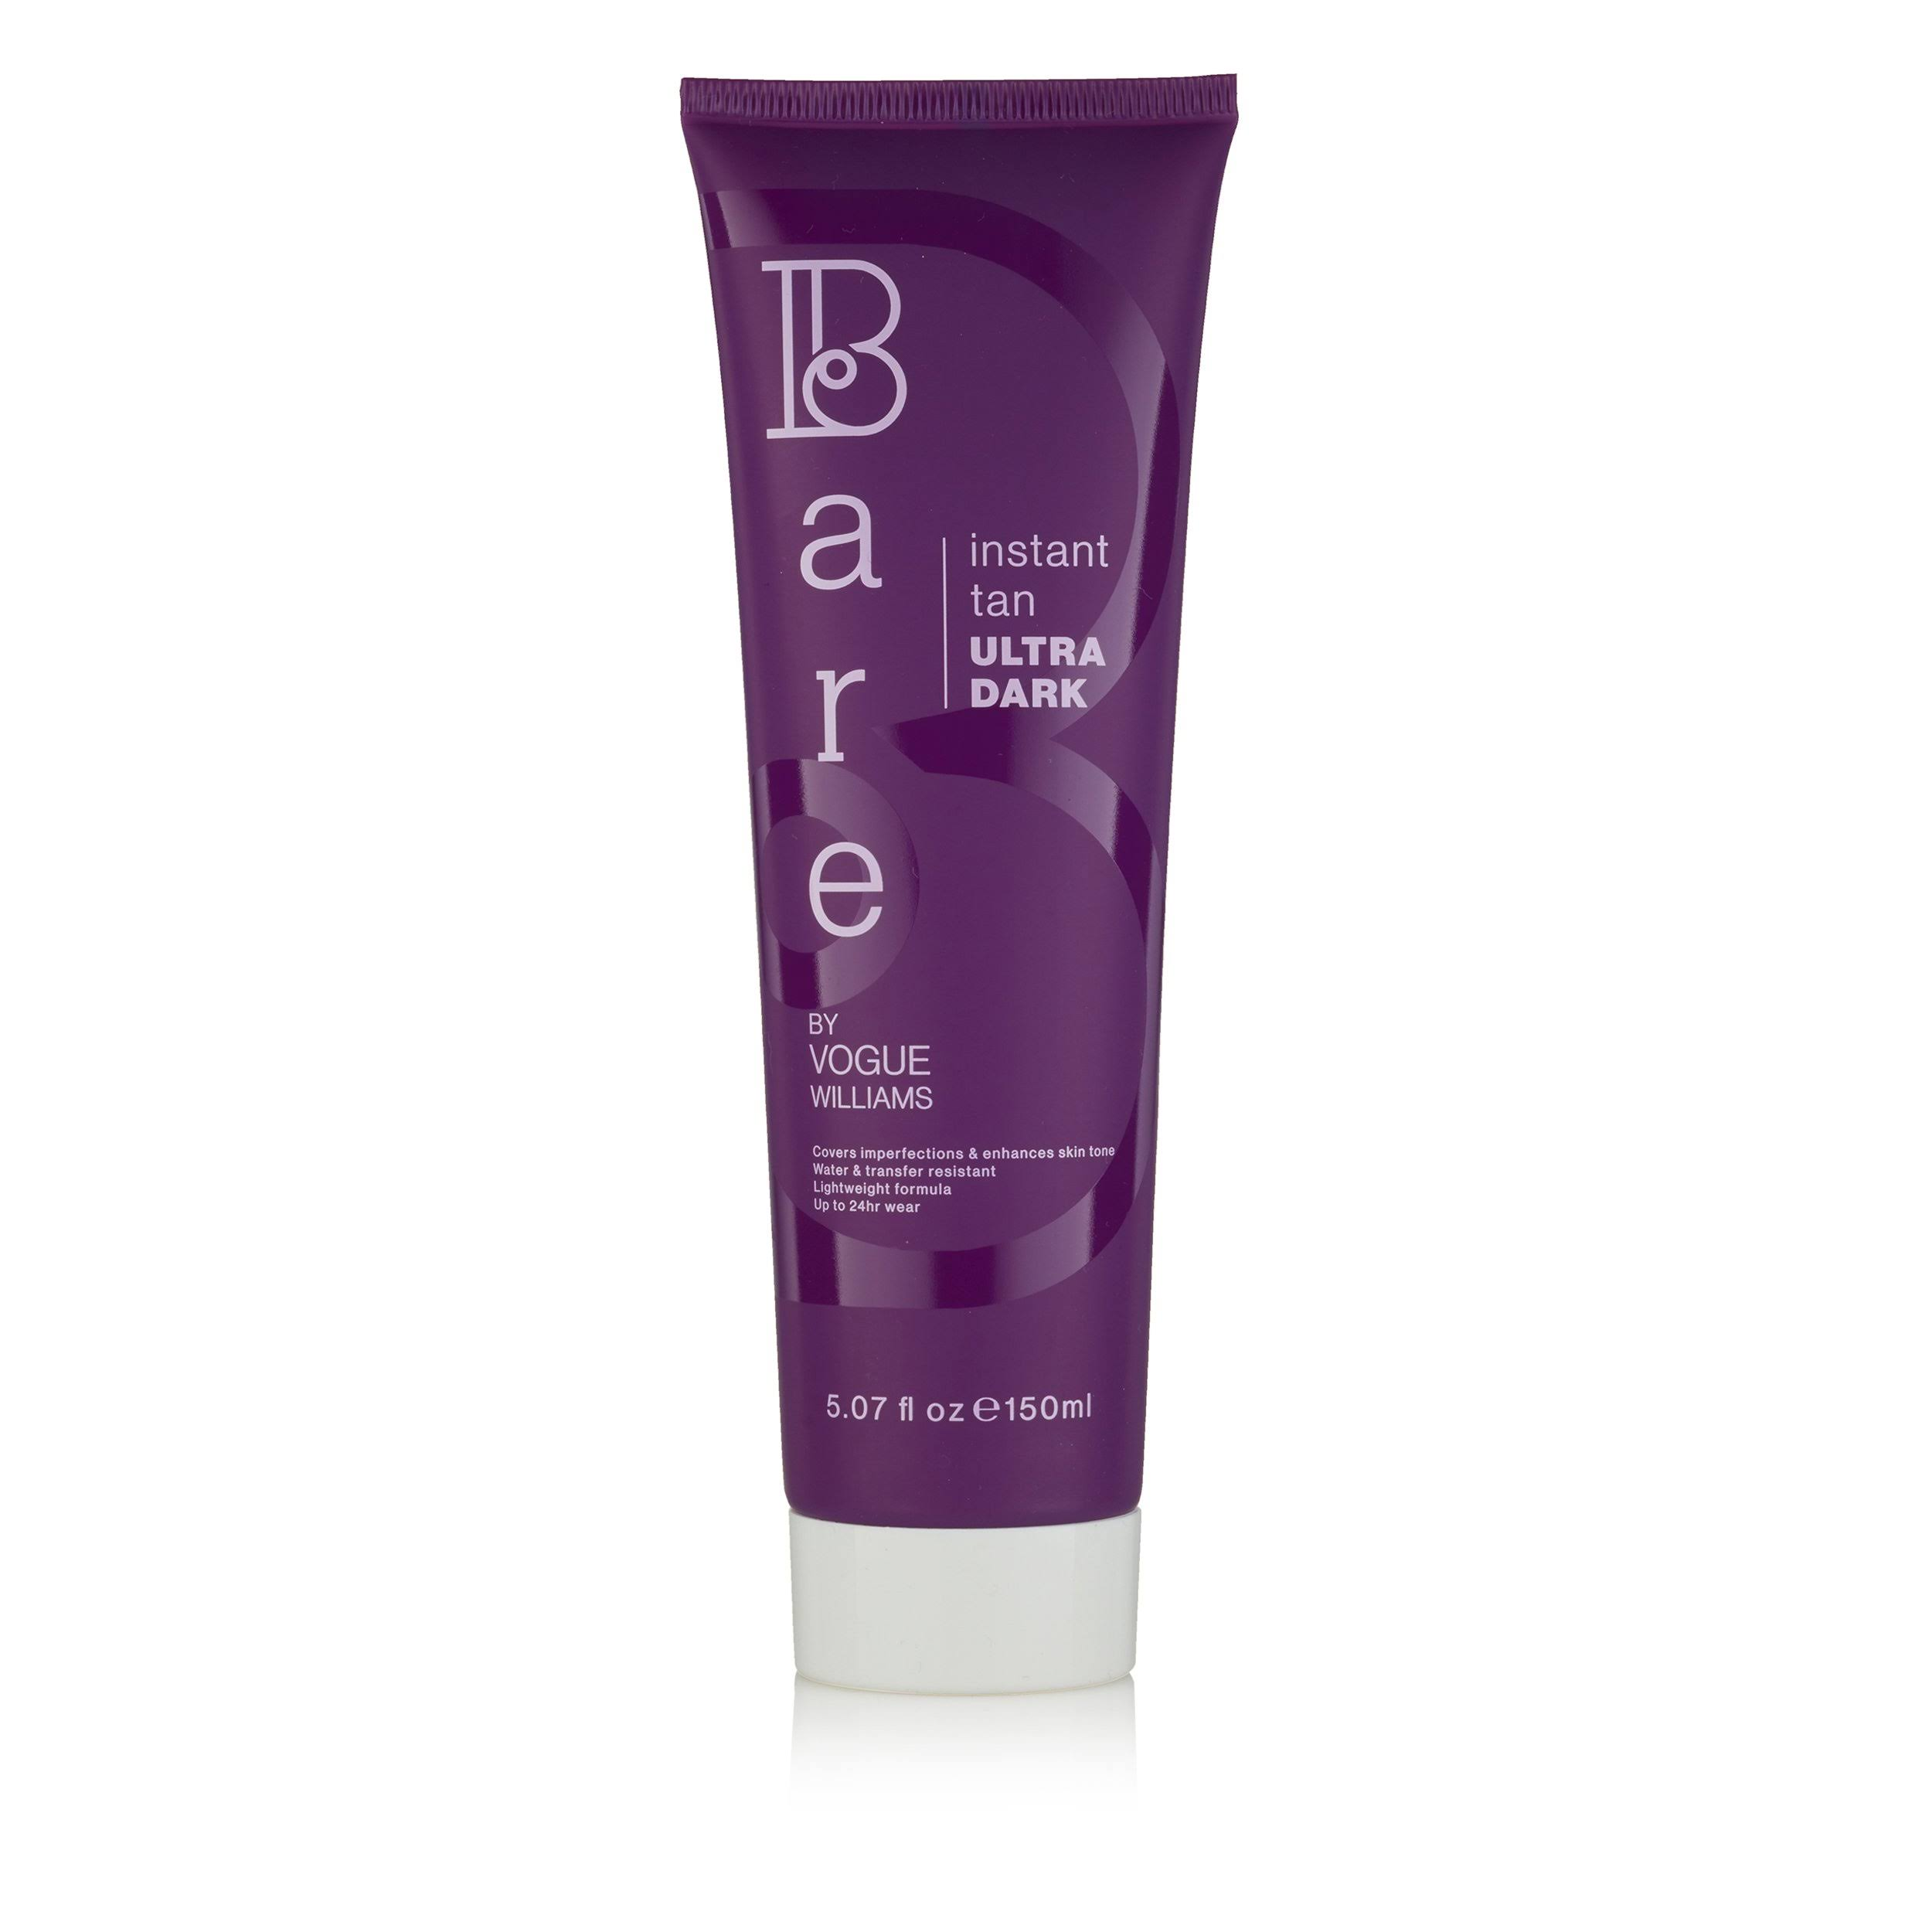 Bare by Vogue Williams Instant Tan - Ultra Dark